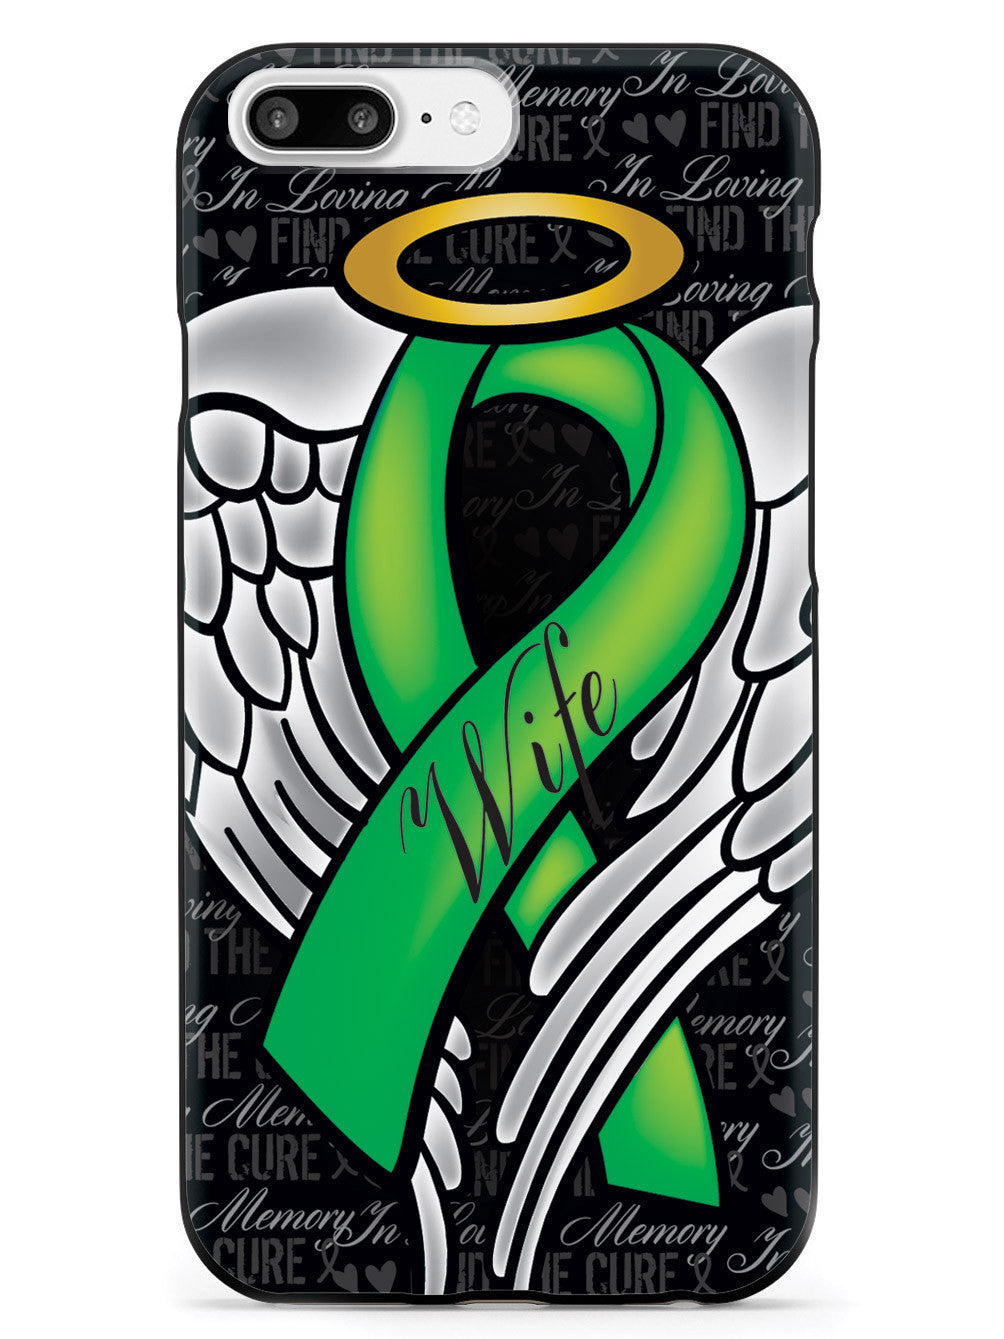 In Loving Memory of My Wife - Green Ribbon Case